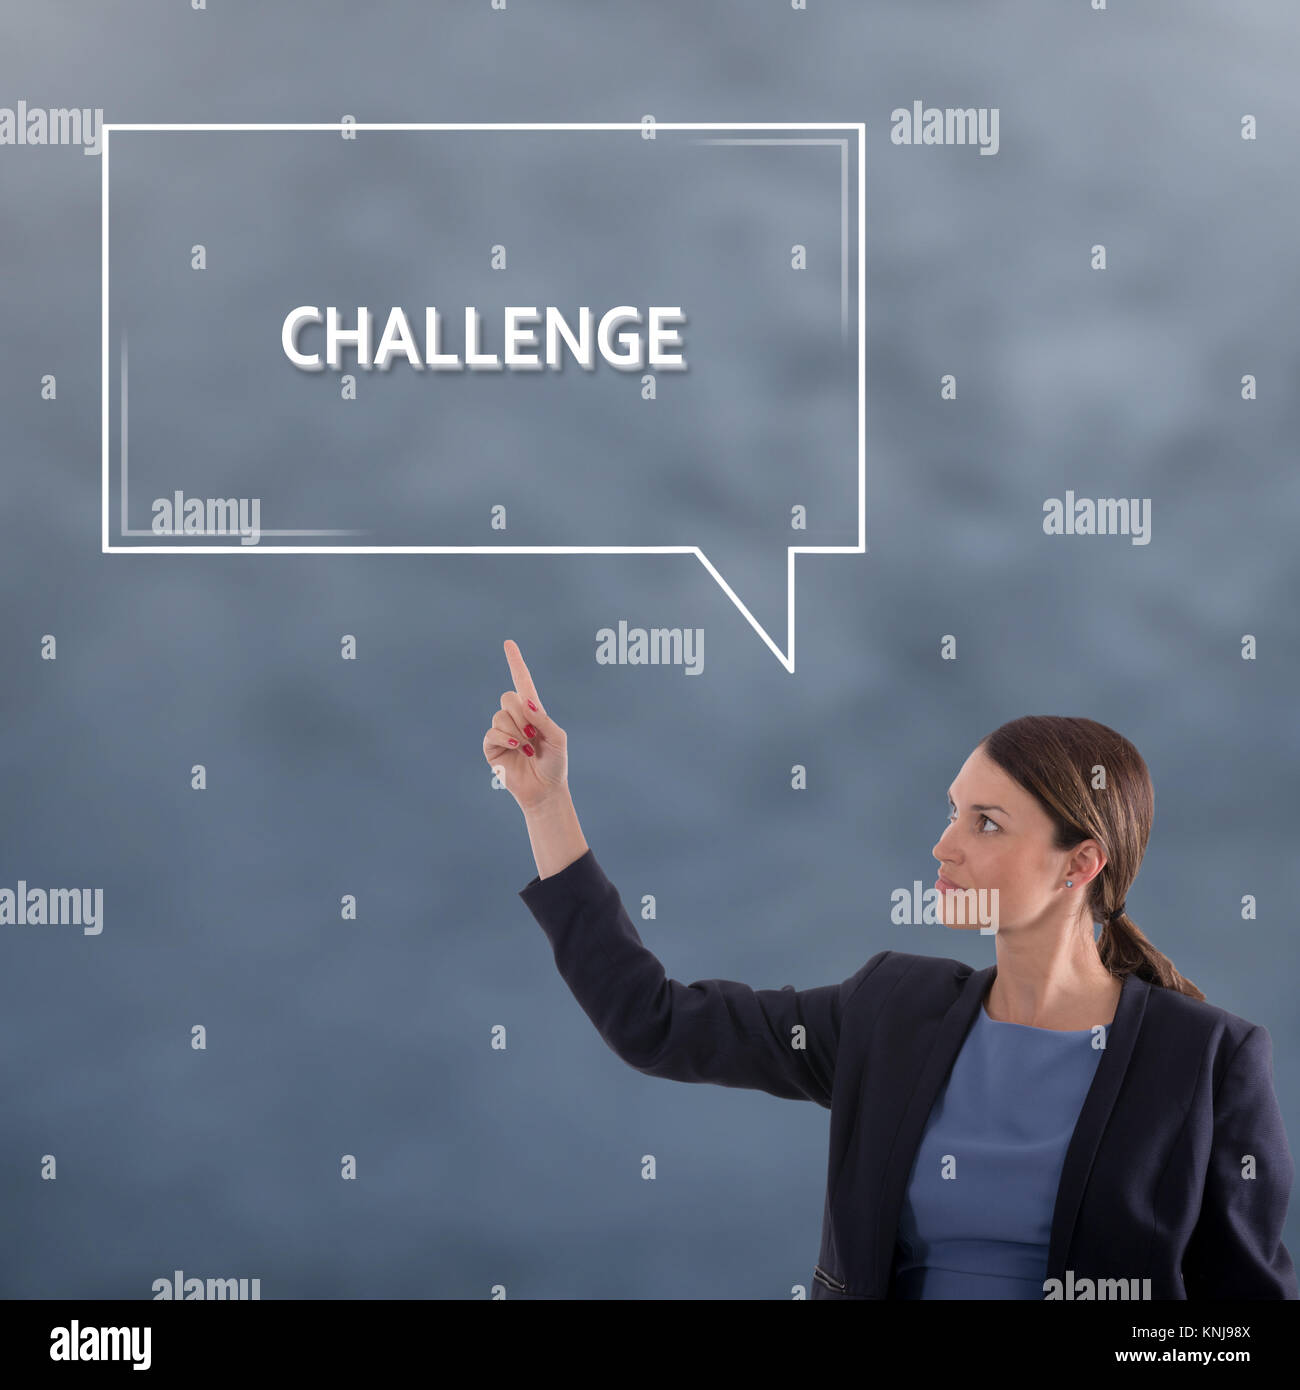 CHALLENGE Business Concept. Business Woman Graphic Concept - Stock Image